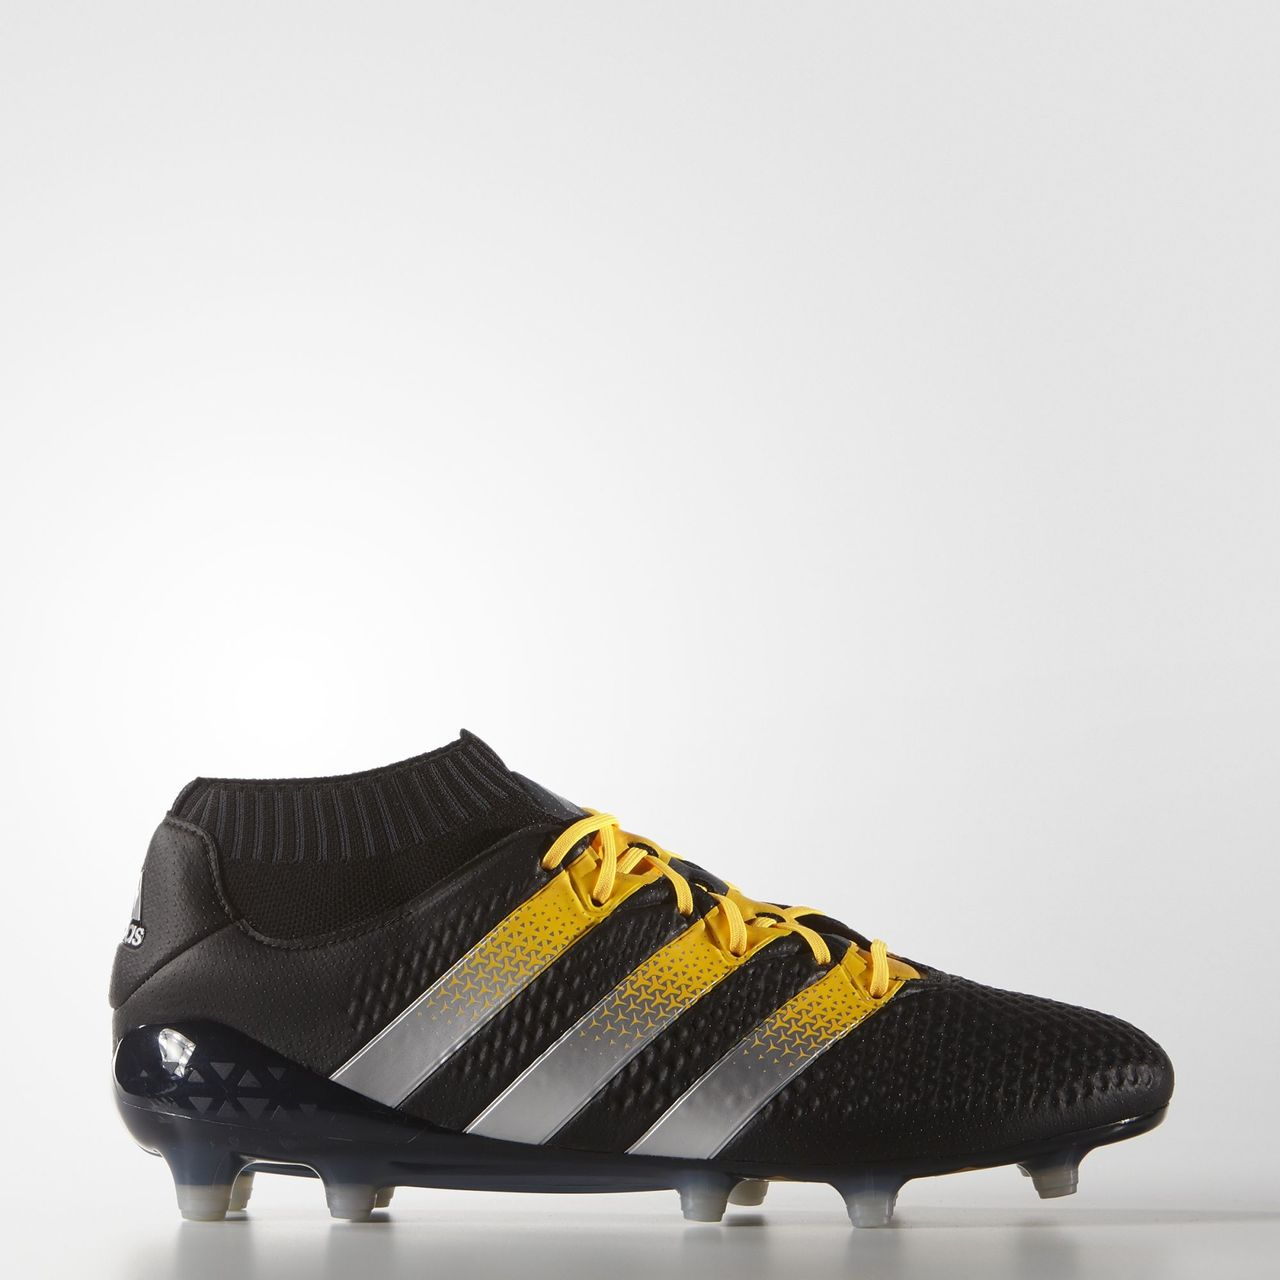 bb7bdaa4b544e Adidas ACE 16.1 Primeknit Firm Artificial Ground Boots - Core Black   Silver  Met   Solar Gold